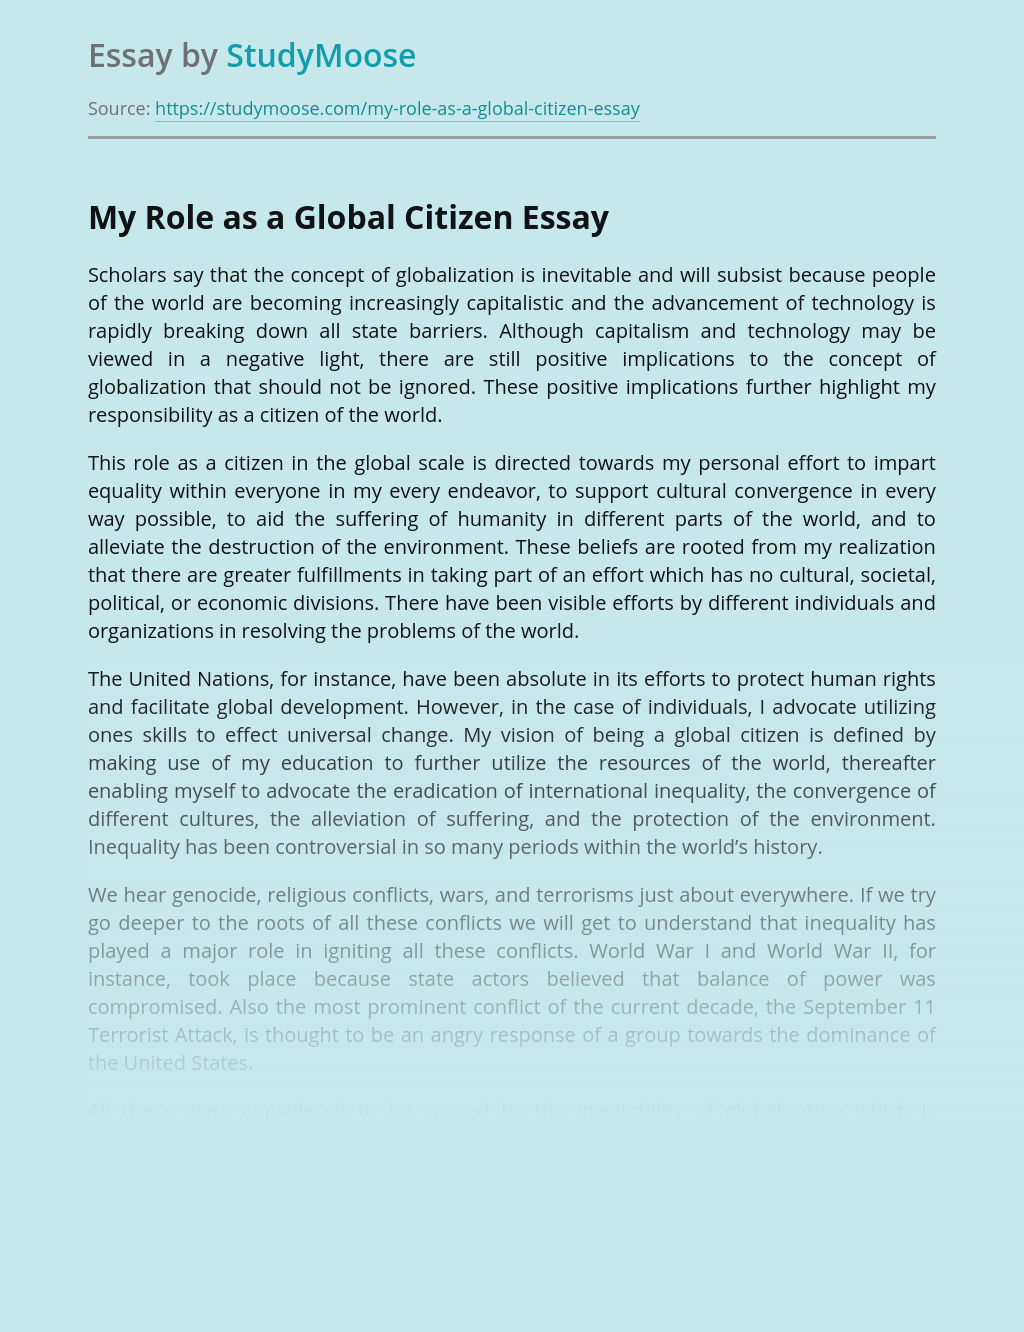 My Roles and Responsibilities as a Global Citizen